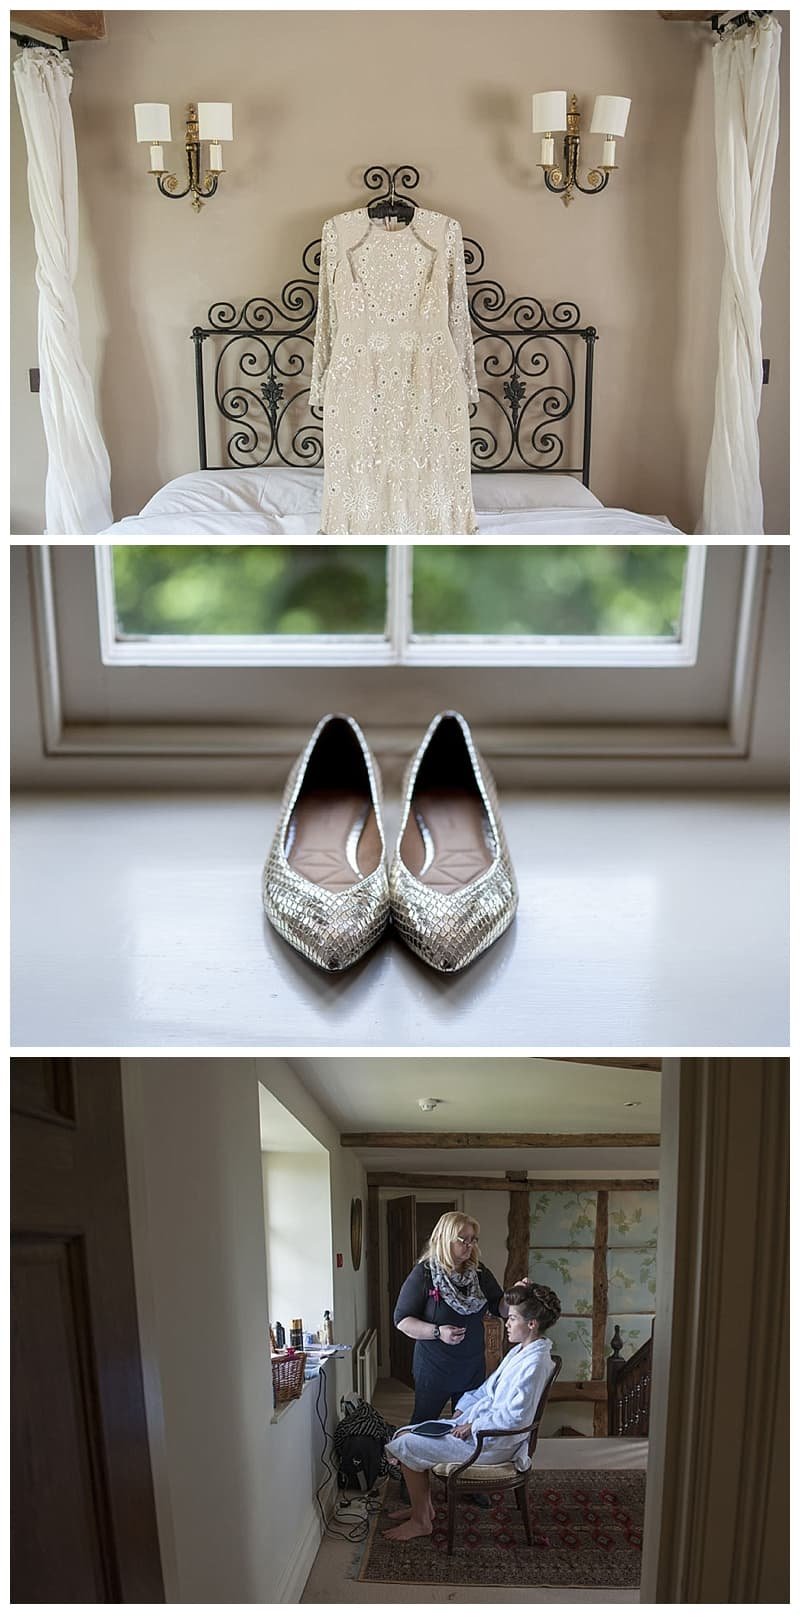 Dewsall Court Wedding, Fran & Alex, Herefordshire Wedding - Benjamin Wetherall Photography ©0007